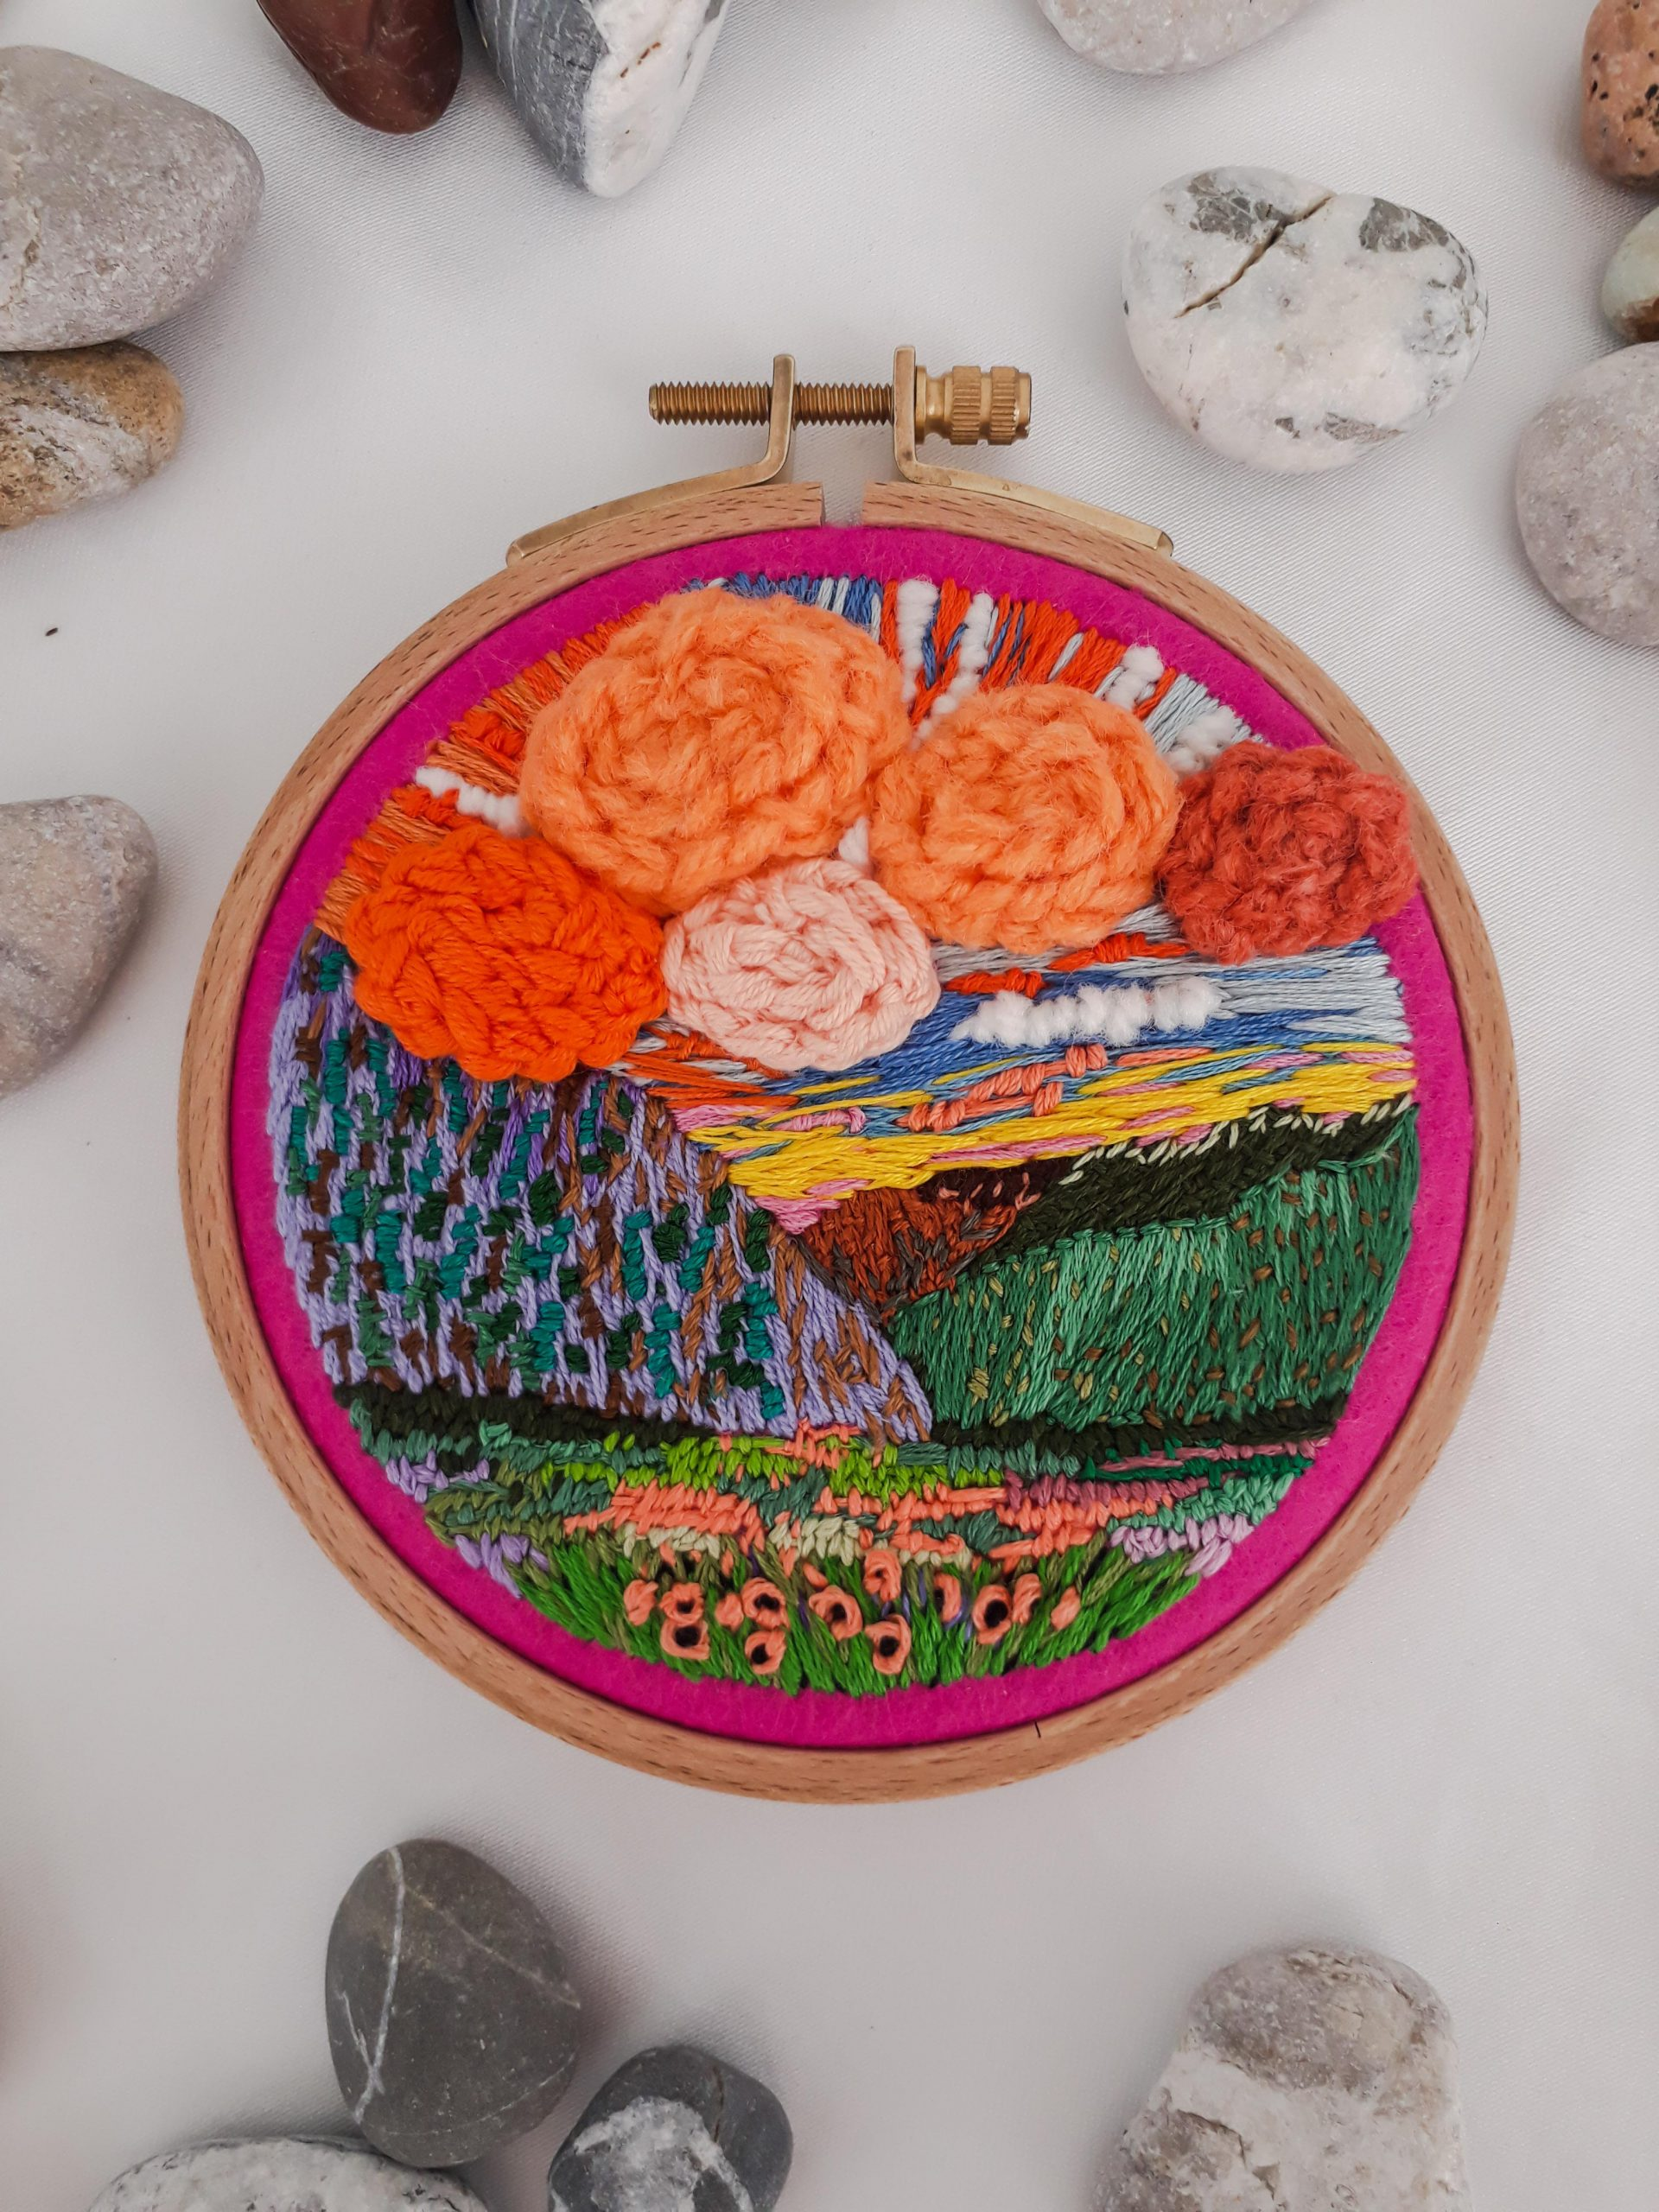 acubccns22061 scaled - I combined embroidery with knitting. How is it ? - hobbies, crafts